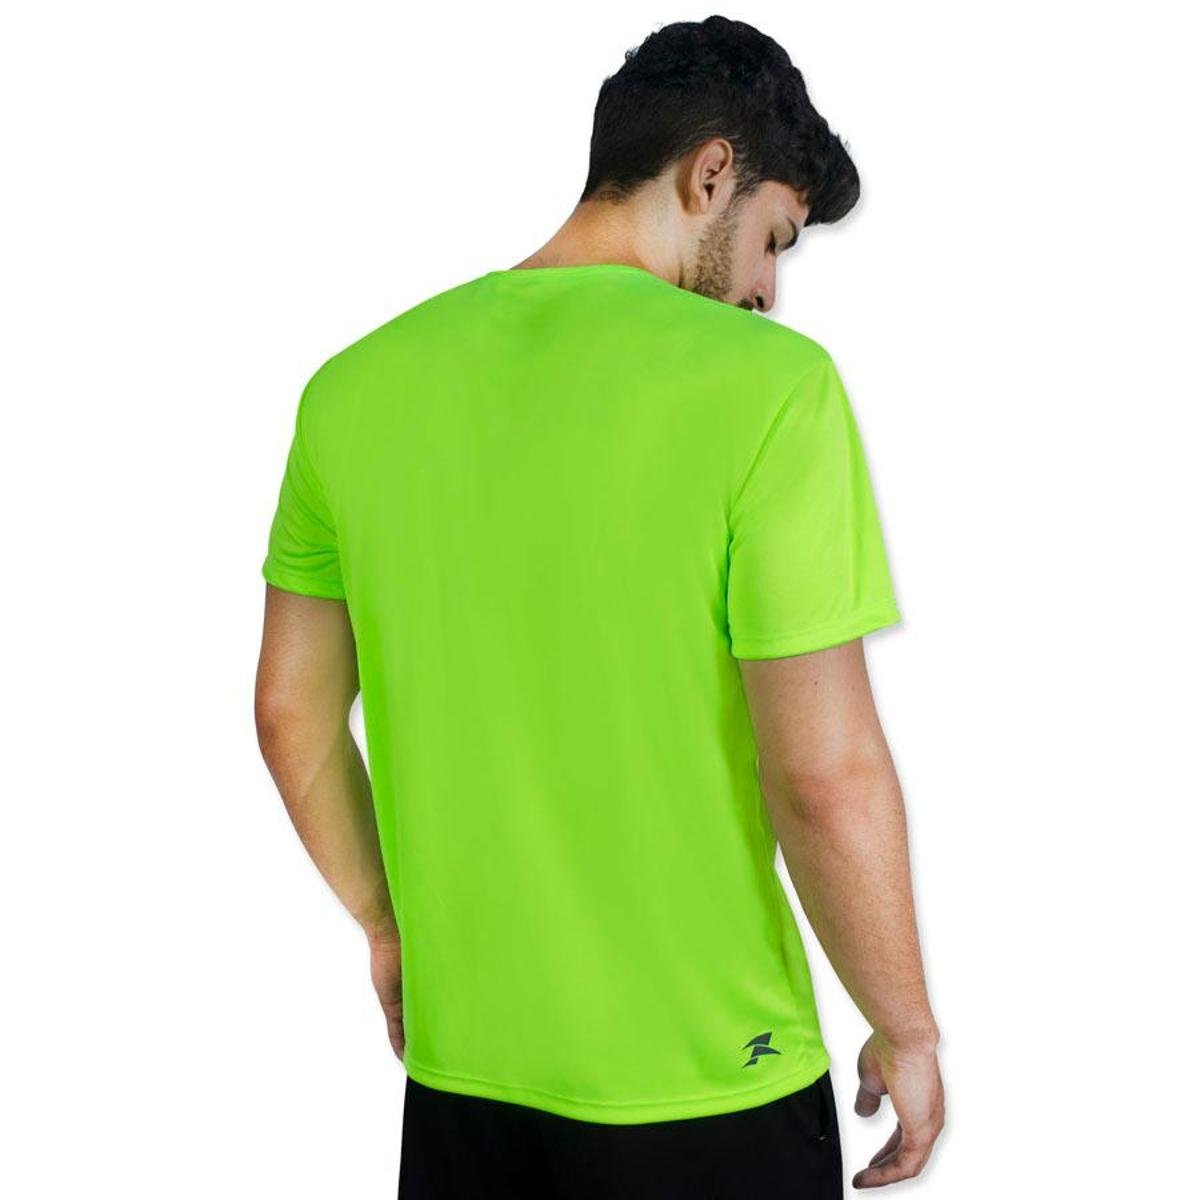 Color SS Dry Camiseta Color Workout Verde Camiseta Muvin Limão pqEXPw6a